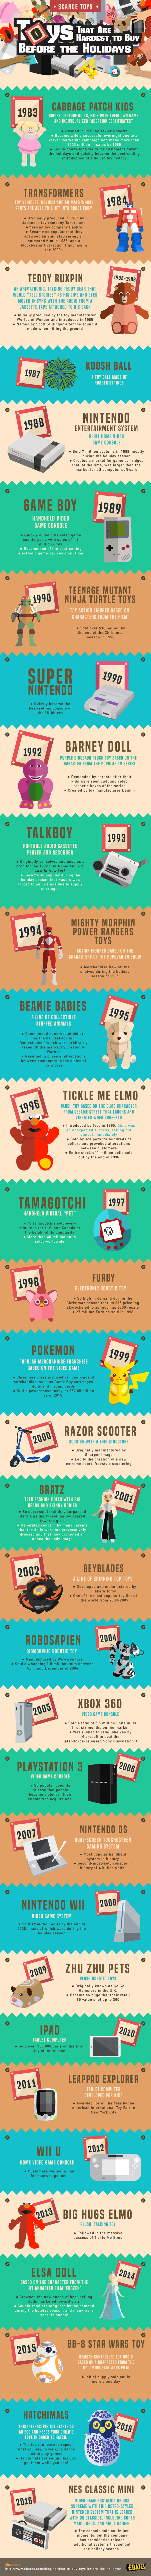 hardest-to-buy-toys-before-the-holidays-infographic-plaza